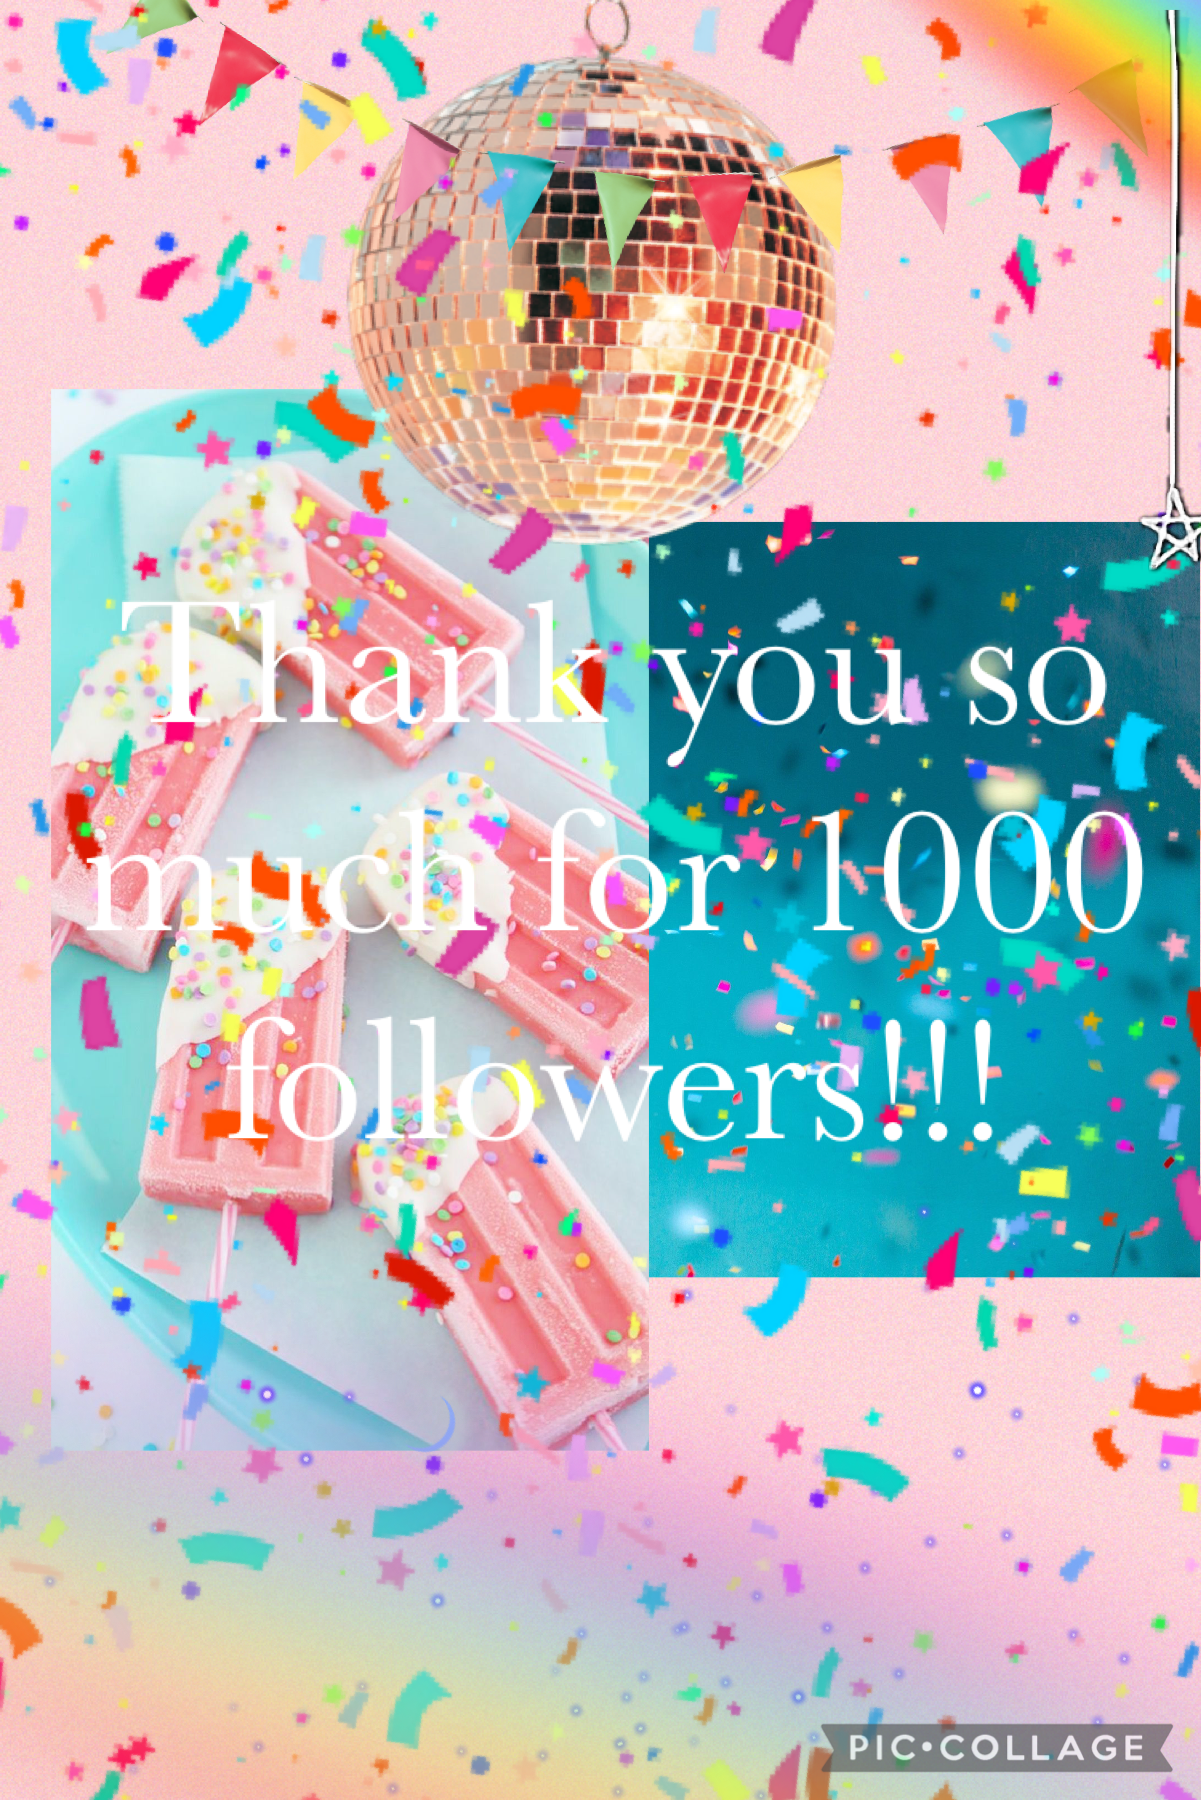 We did it! 1000 followers! I didn't actually think this would happen, but it did! I'm so grateful for all of you and I feel like I'm not giving enough. I'm going to post more, but thanks for 1000 followers! 💕💜💕💜💕💜💕💜